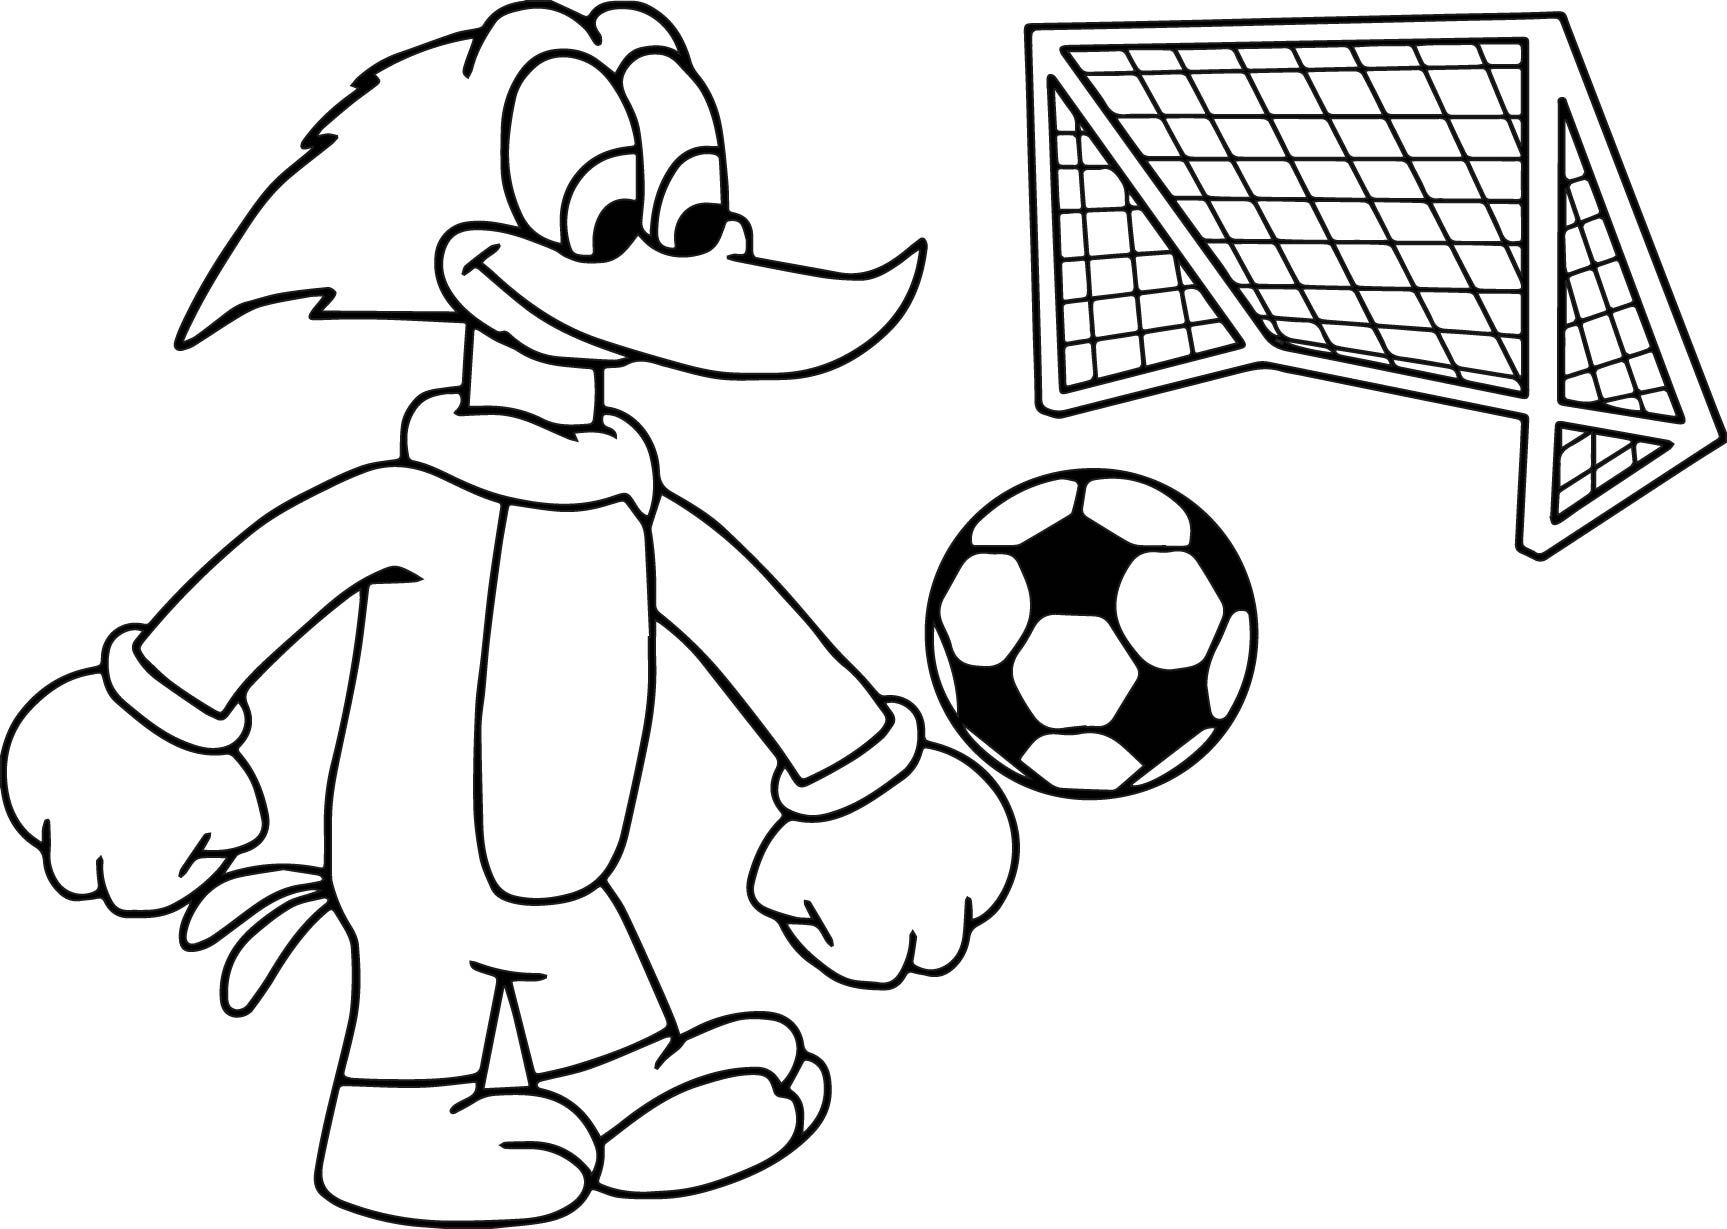 1727x1229 Stunning Design Soccer Coloring Pages Woody Woodpacker Play